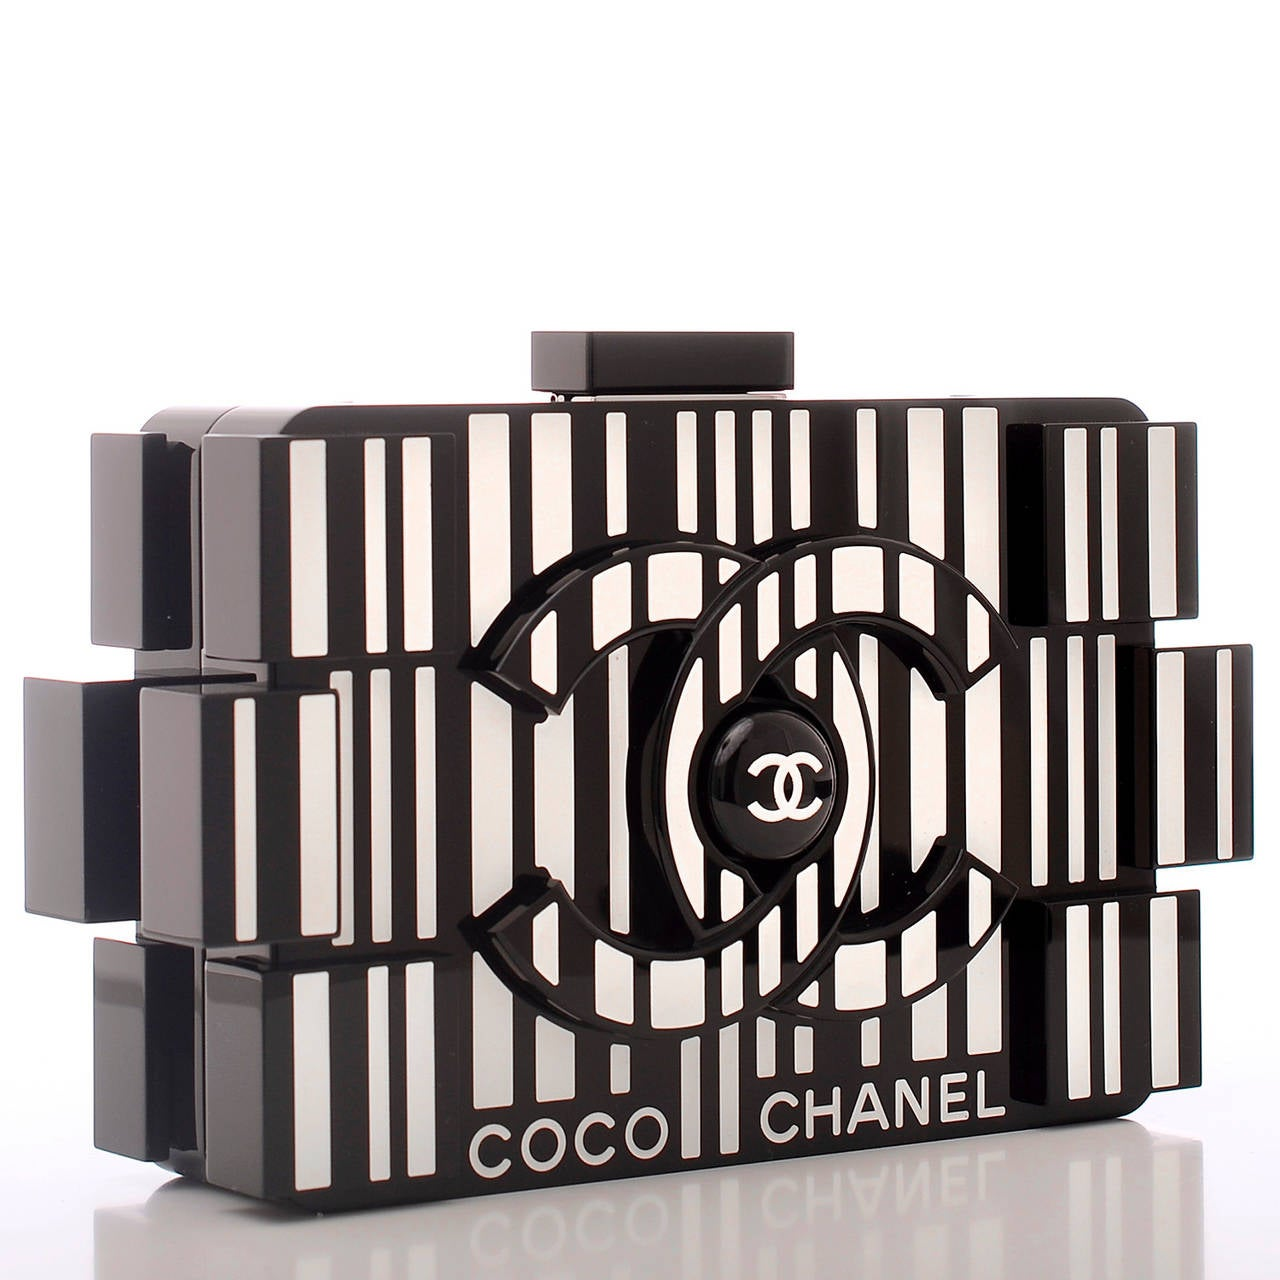 Chanel runway Op-Art Lego Boy minaudiere of black and white plexiglass with ruthenium hardware.  This rare, collectible bag features the signature CC logo at center front and back, top push closure and an interwoven ruthenium chain and black